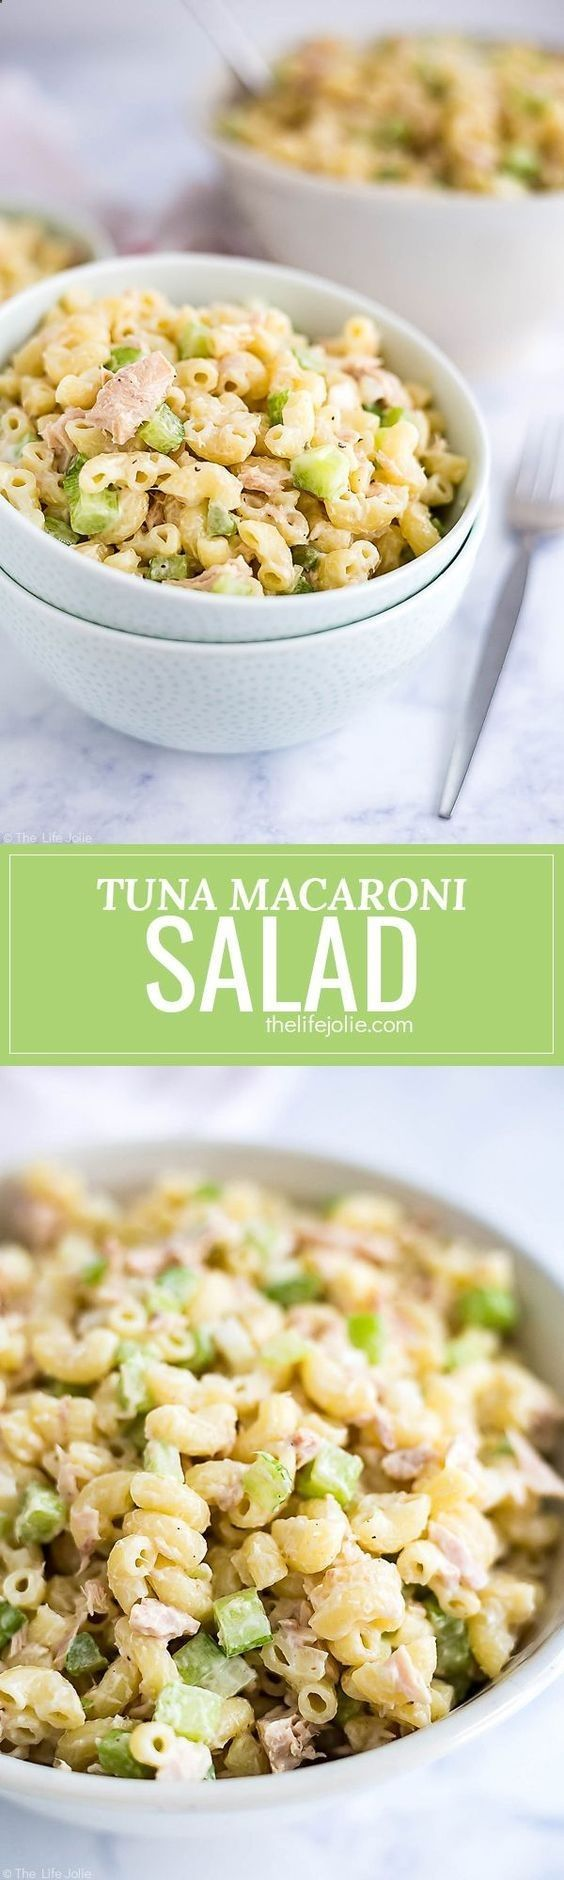 This classic Tuna Macaroni Salad recipe is the best cold salad to make for your next spring or summer picnic. Its such an easy side dish to throw together with simple ingredients like tuna, pasta, celery and mayonnaise and is full of fresh and delicious